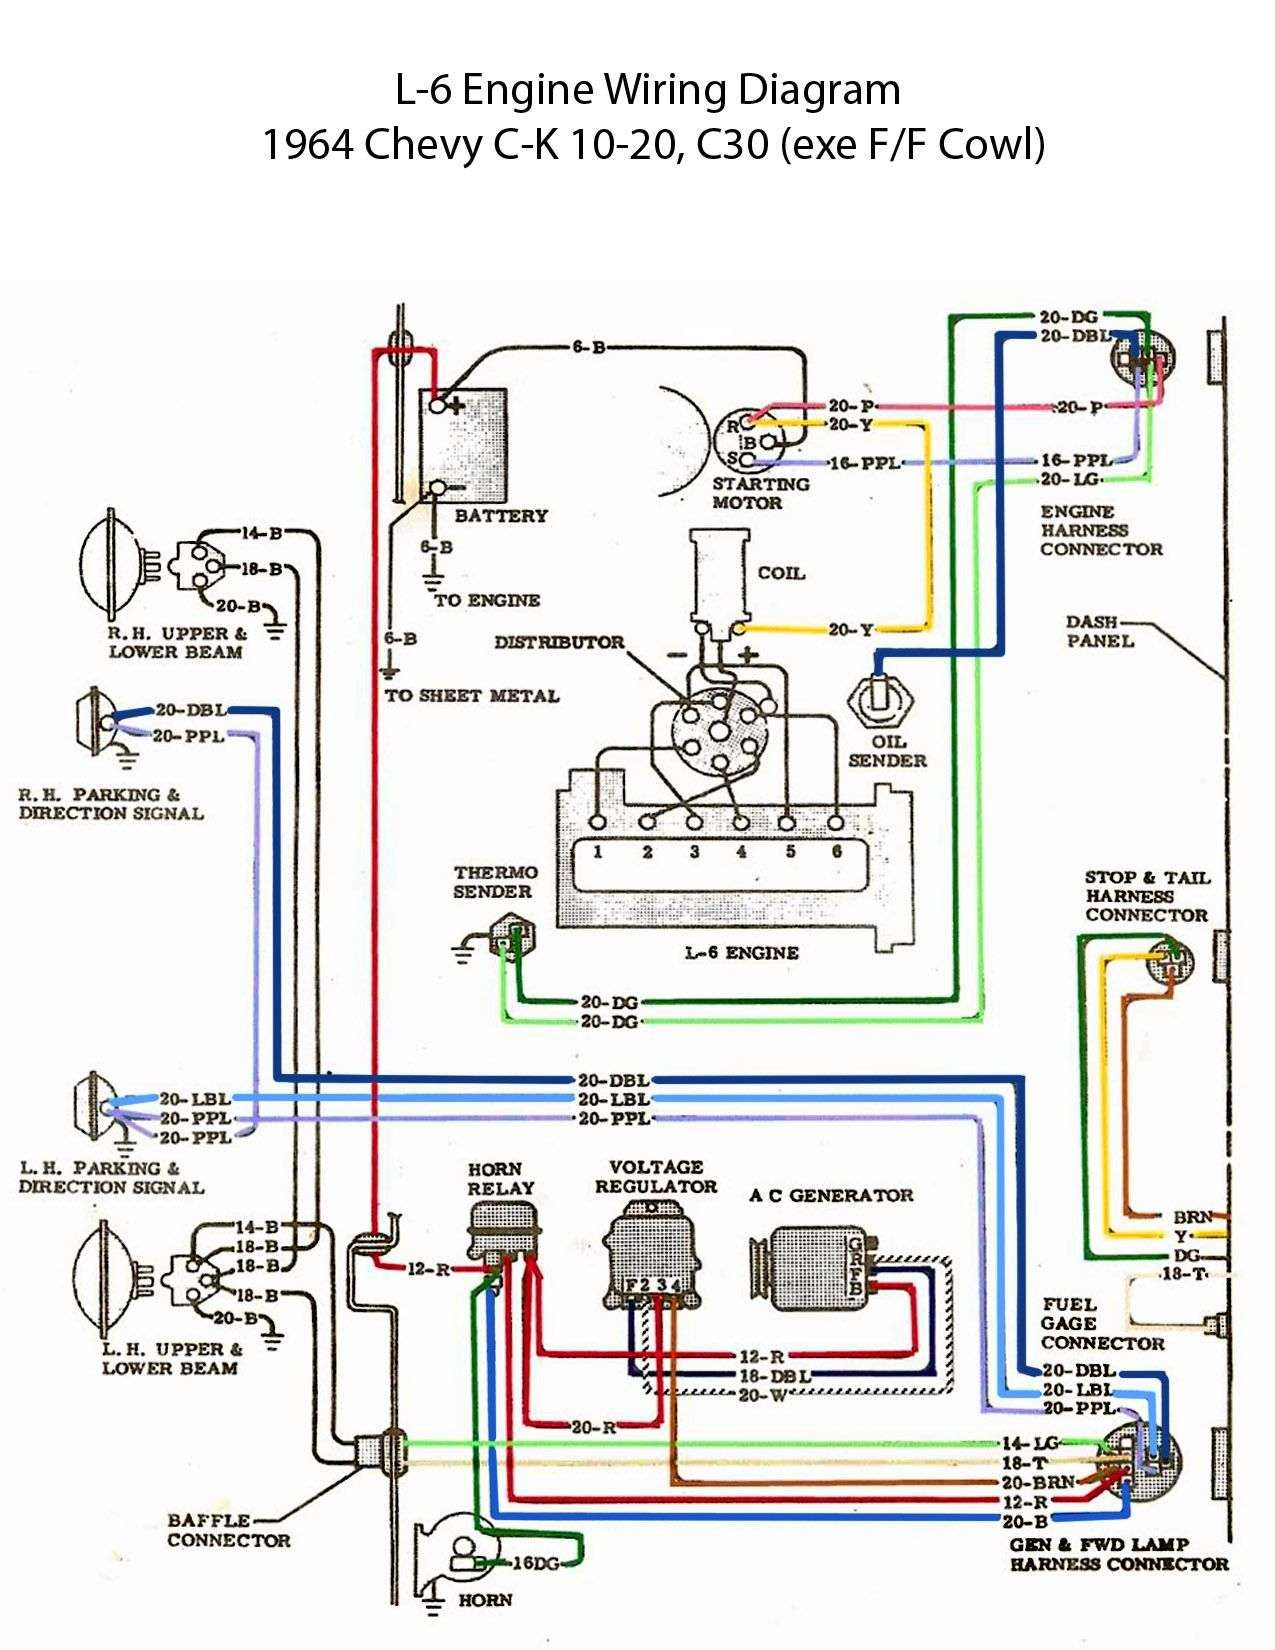 gm horn wiring diagram   wiring diagrams fate right  wiring diagram library